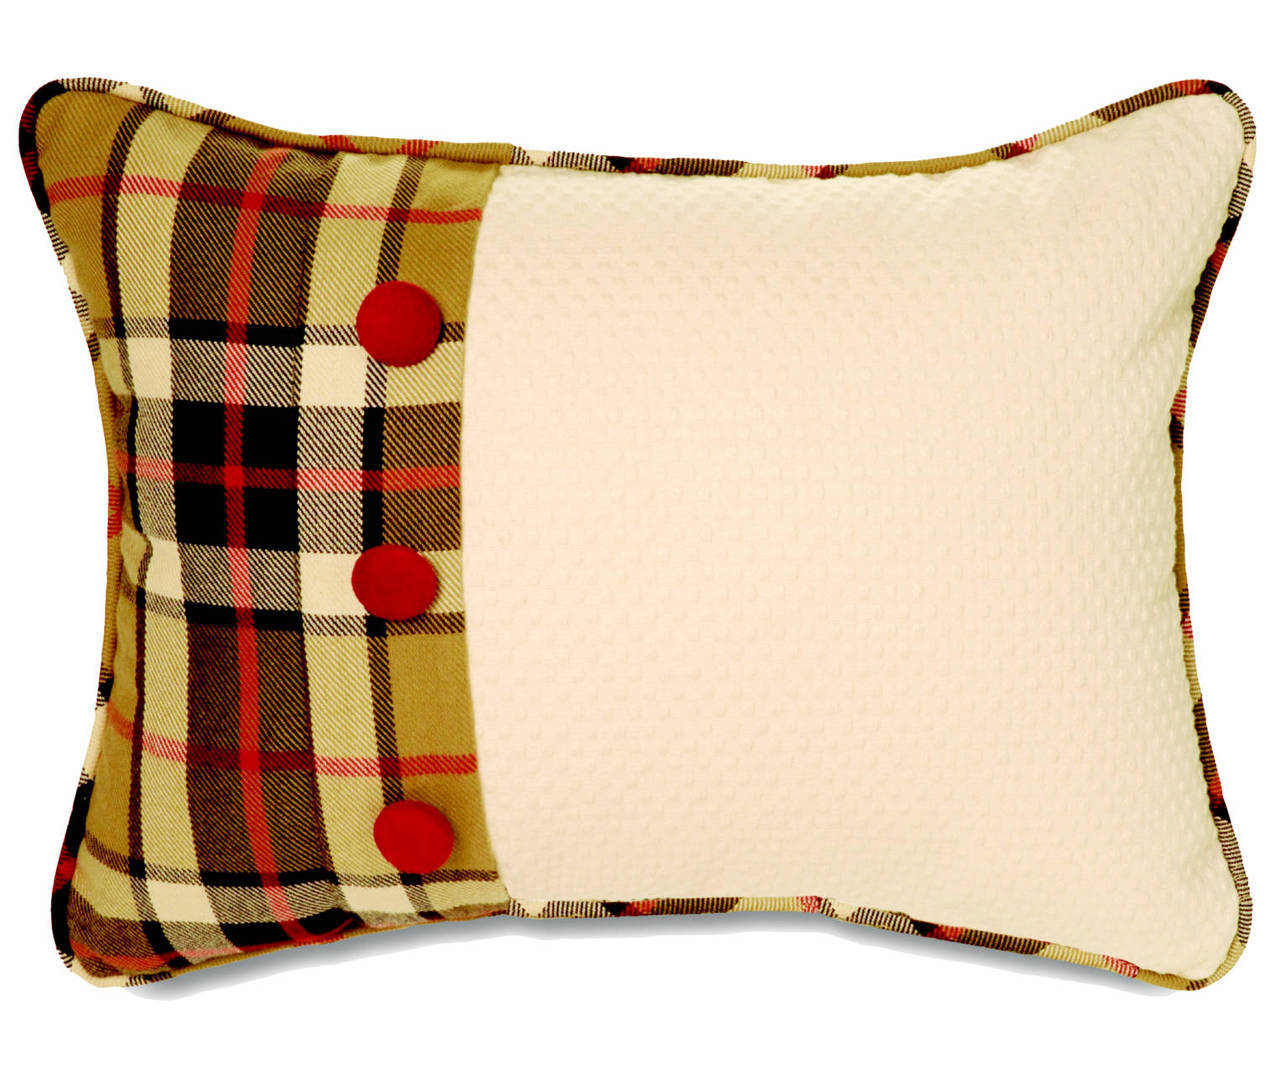 Fulham Road Oblong Pillow Mystic Valley Traders - unique linens online